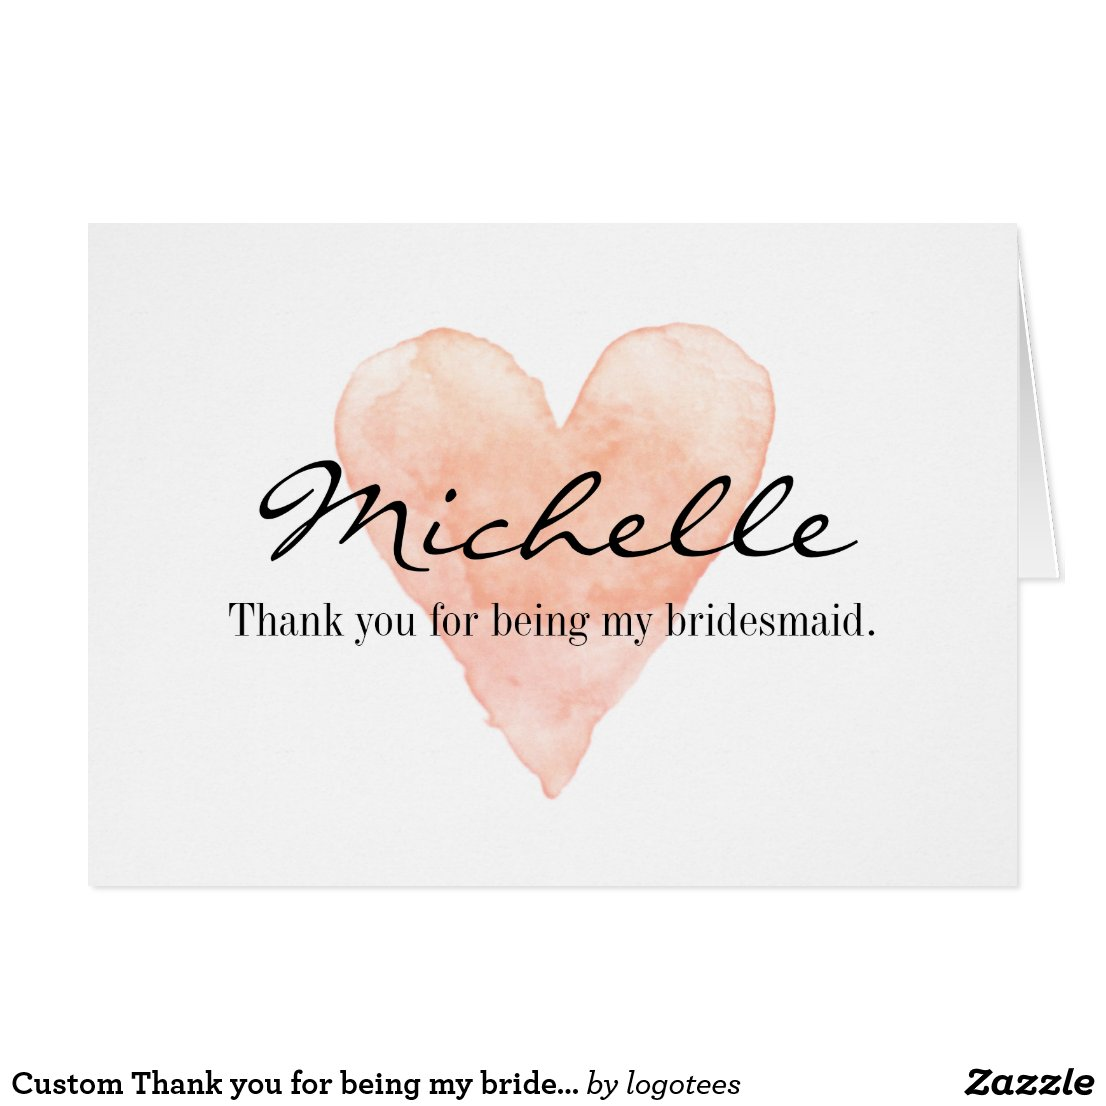 Custom Thank you for being my bridesmaid cards